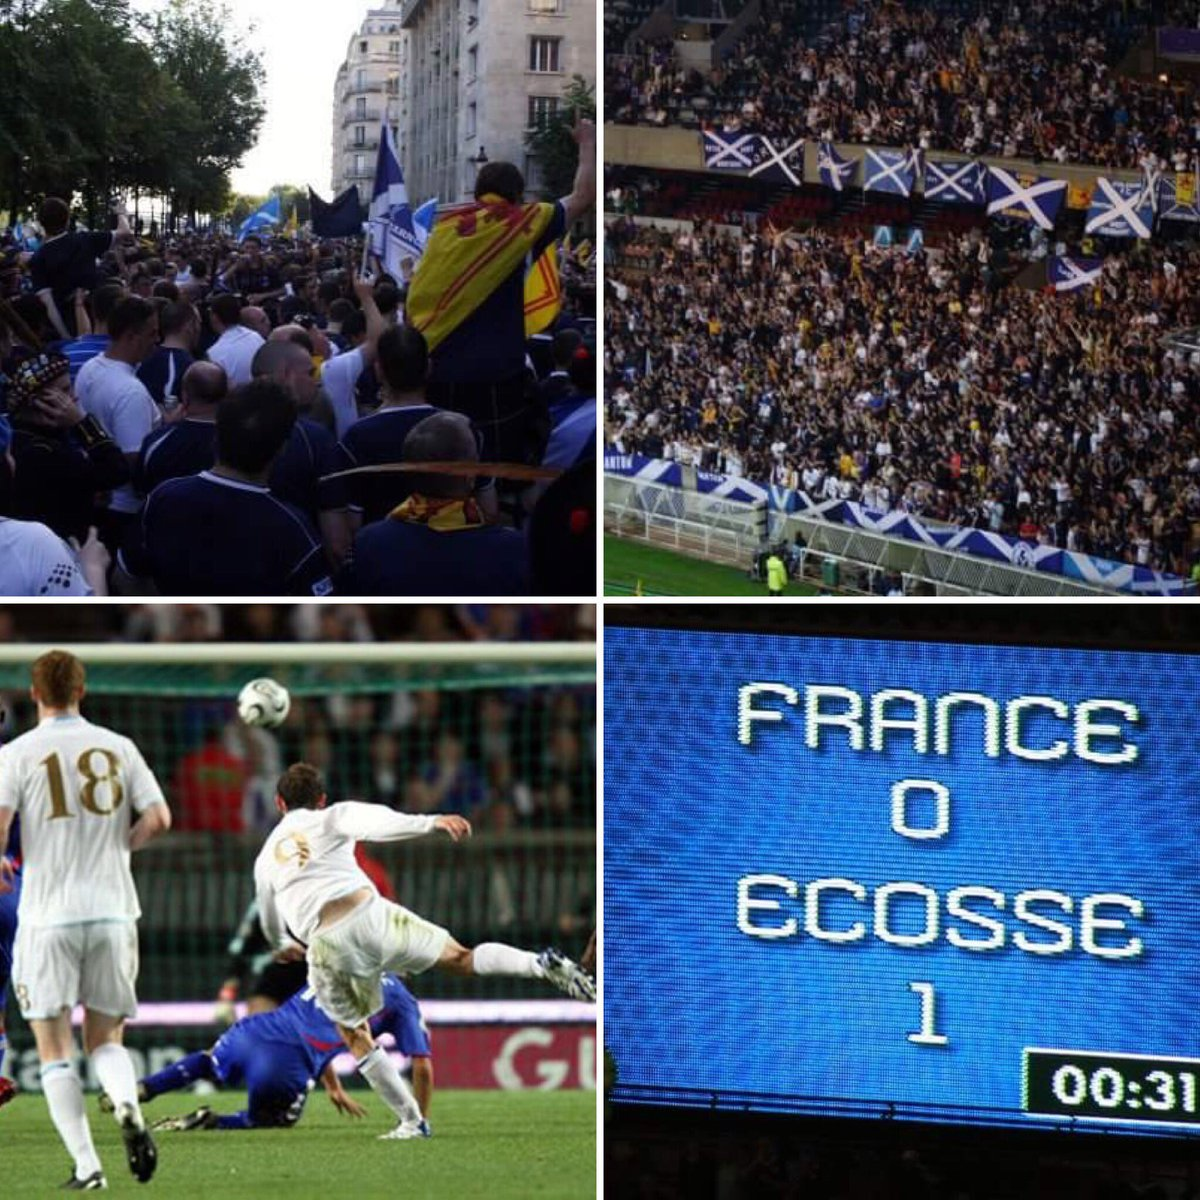 The Tartan Army On Twitter Years Ago Today France Scotland In The Parc Des Prince France Scotland Ecosse TartanArmy